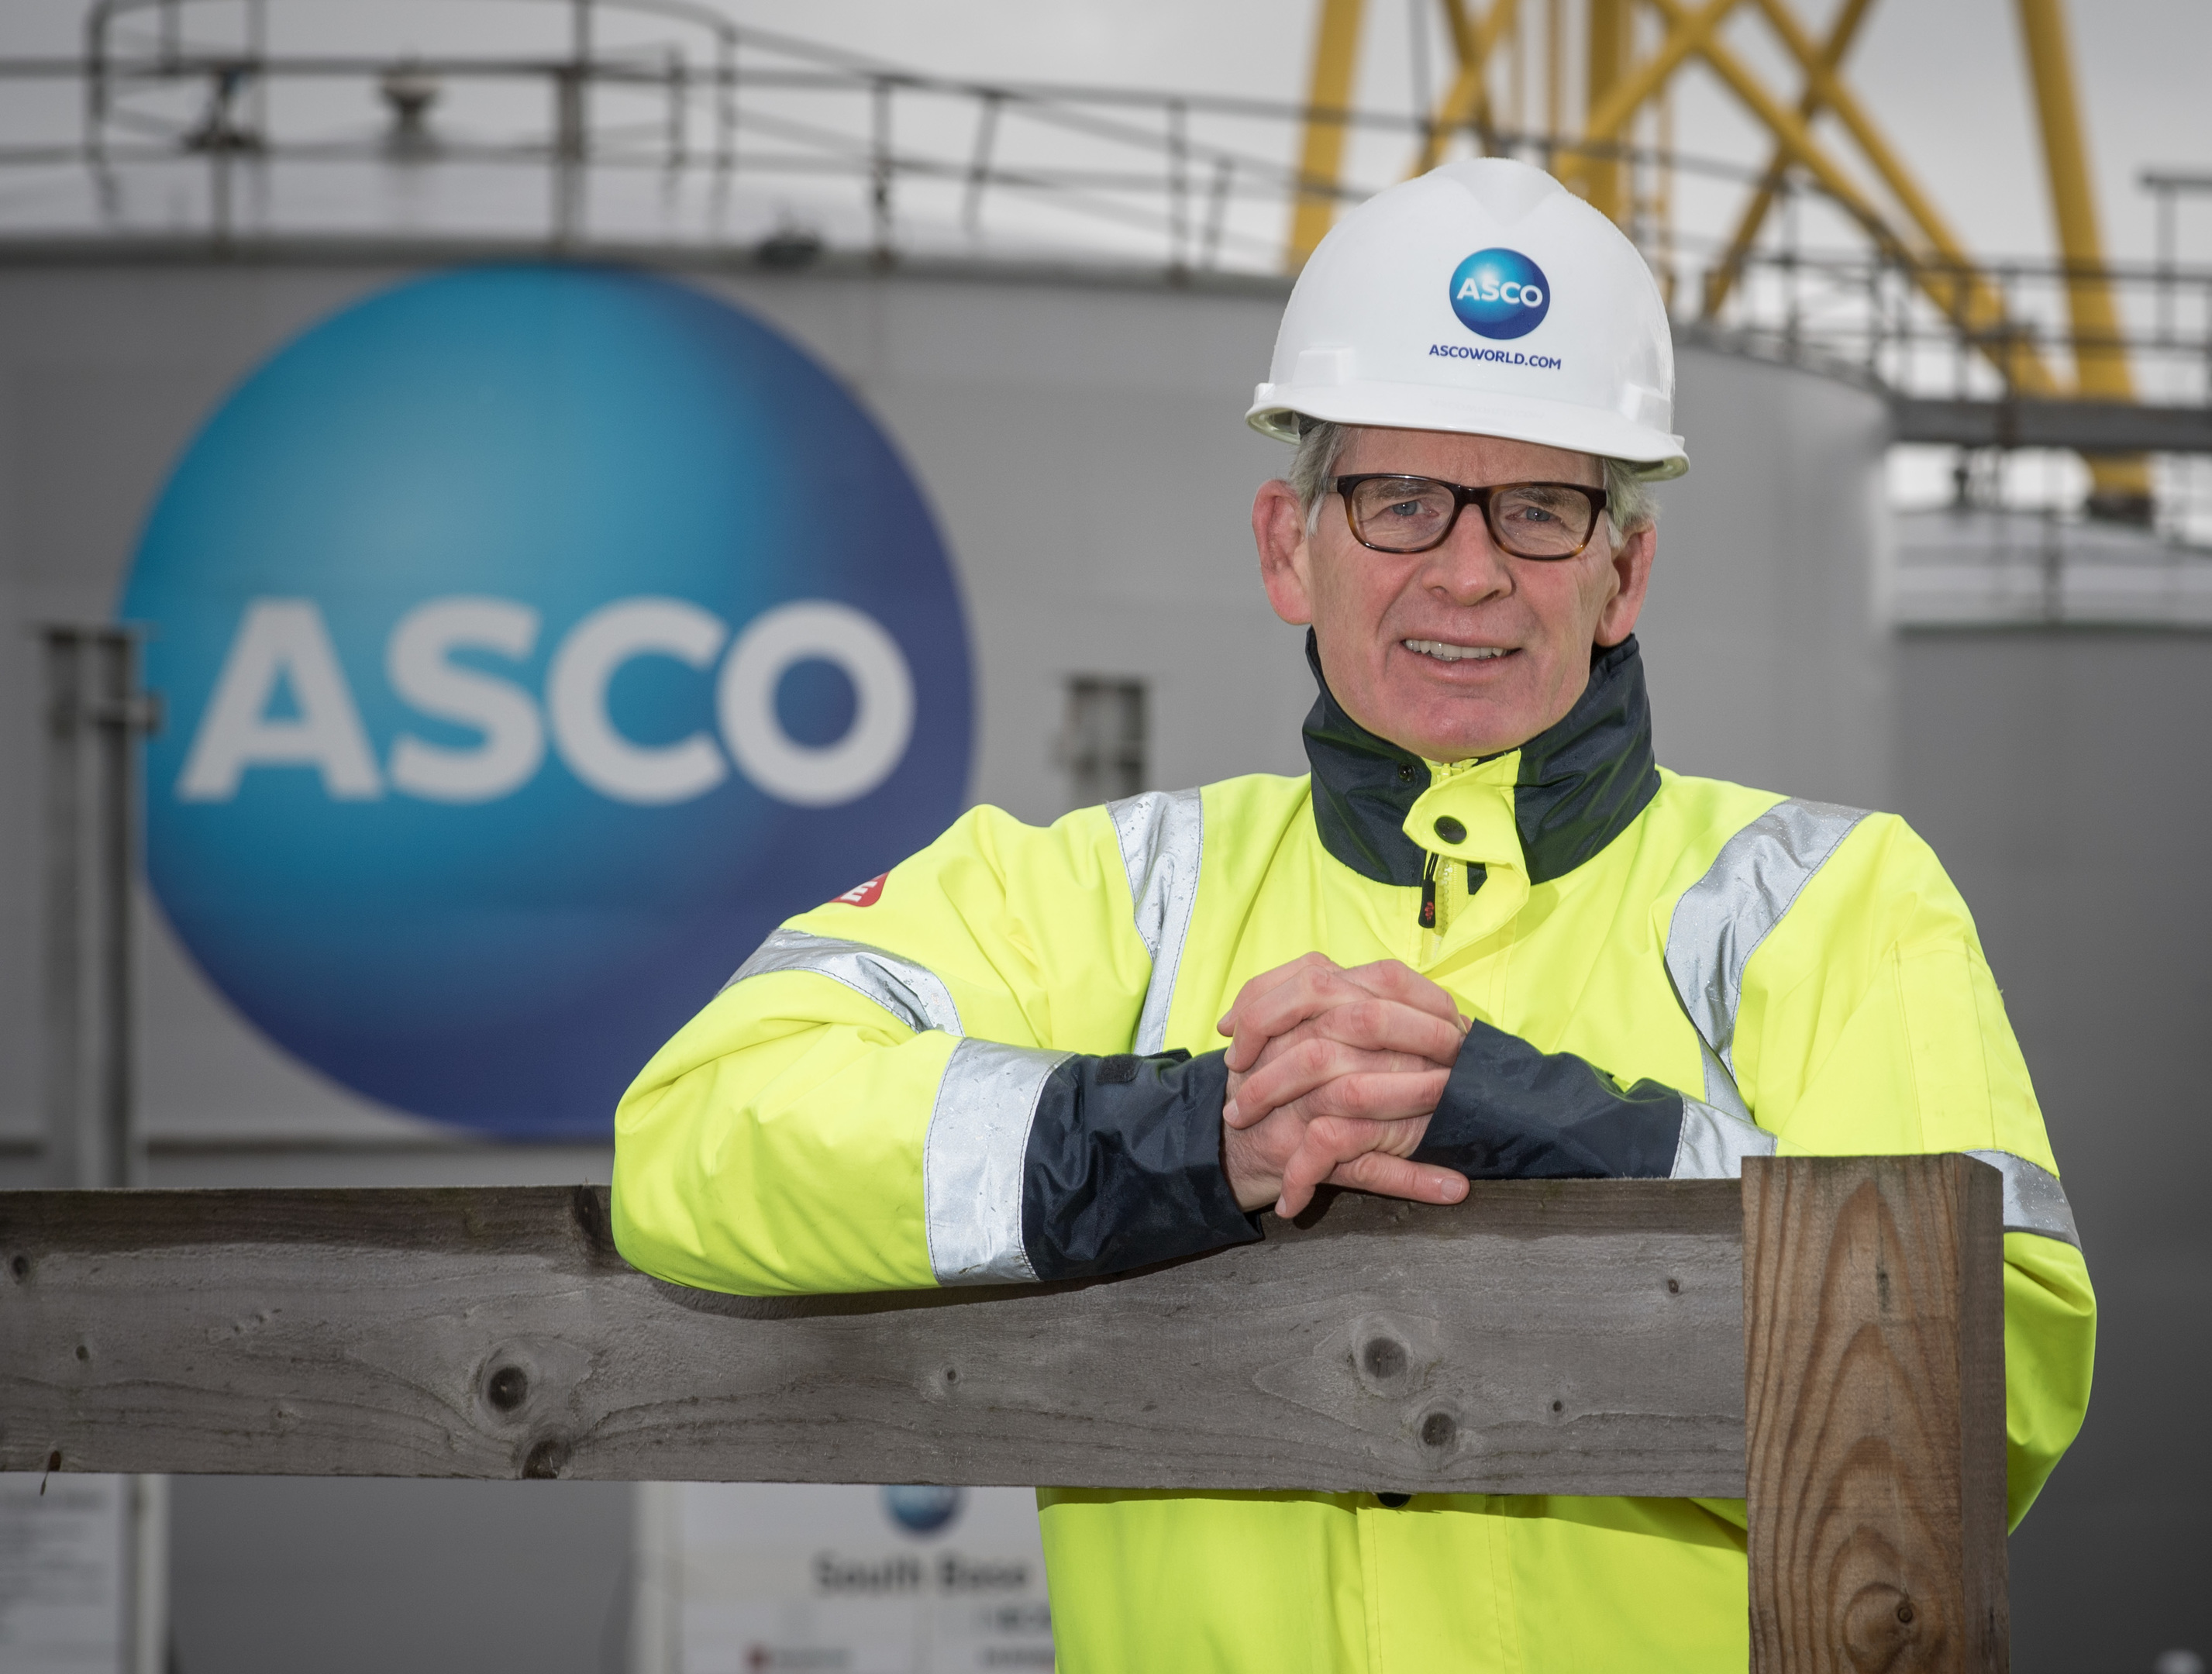 Aberdeen,  Scotland, Thursday 29th March 2018   Pictured is Alan Brown, CEO of ASCO at Peterhead South Base.  Picture by Michal Wachucik / Abermedia